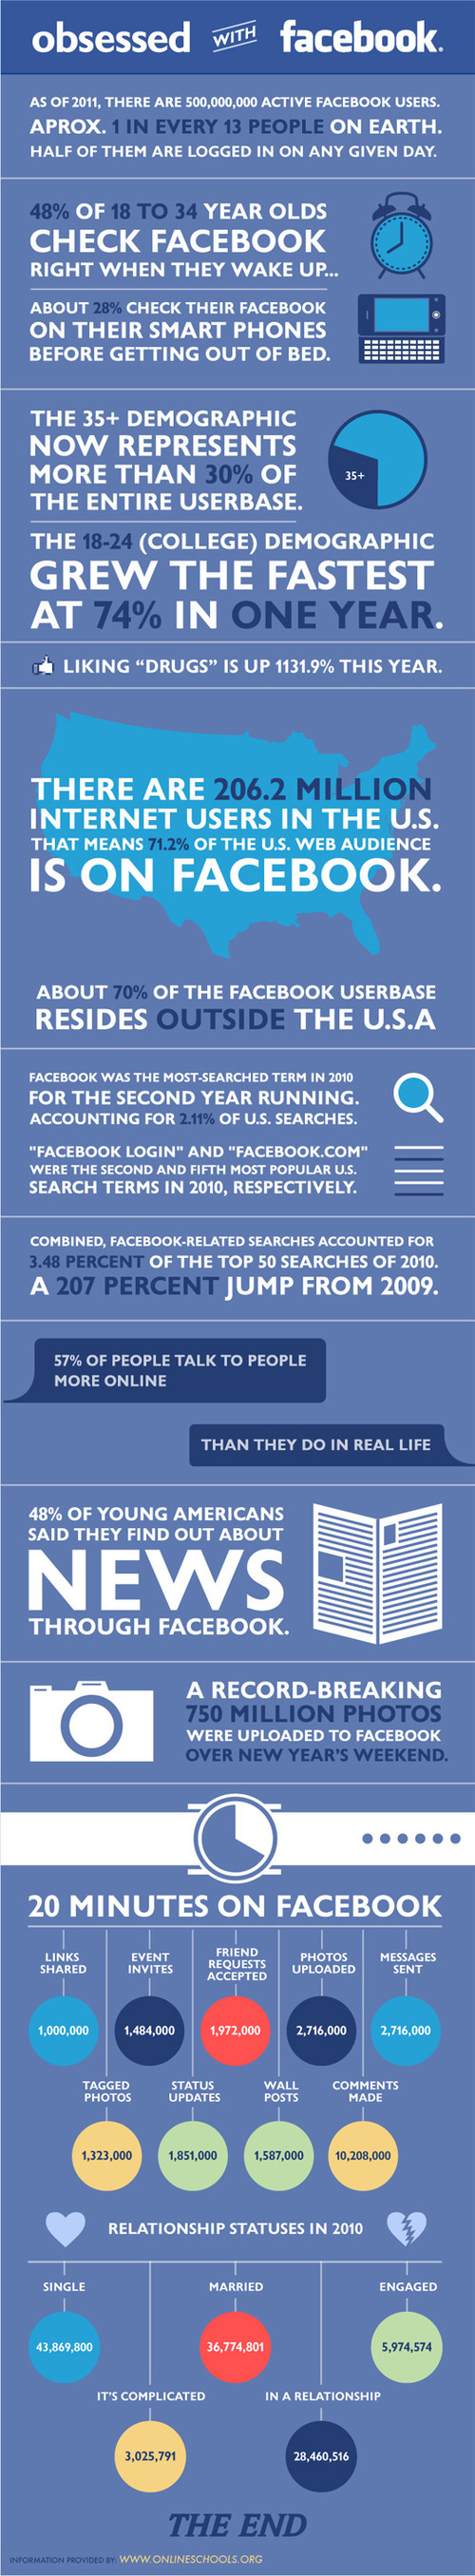 Facebook-statistics-facebook-stats-facts-2011